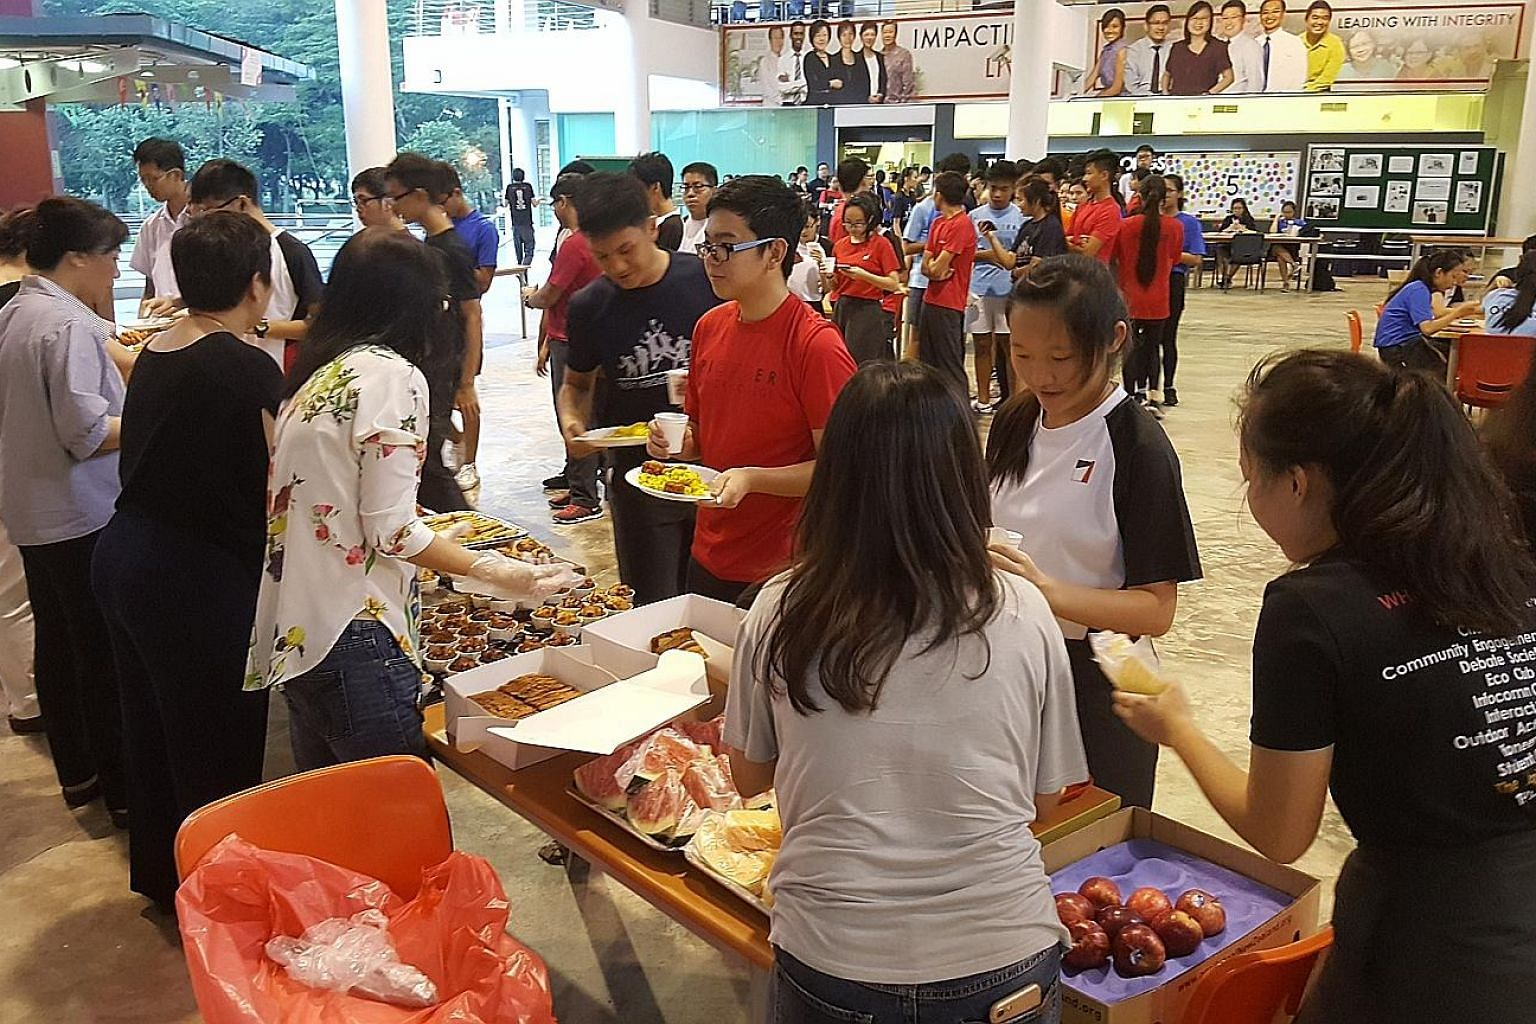 Pioneer Junior College students enjoy not just a conducive environment in school to study at night ahead of the year-end examinations, but also food which is brought and served by parents. Up to 250 students will head down to the school for its night